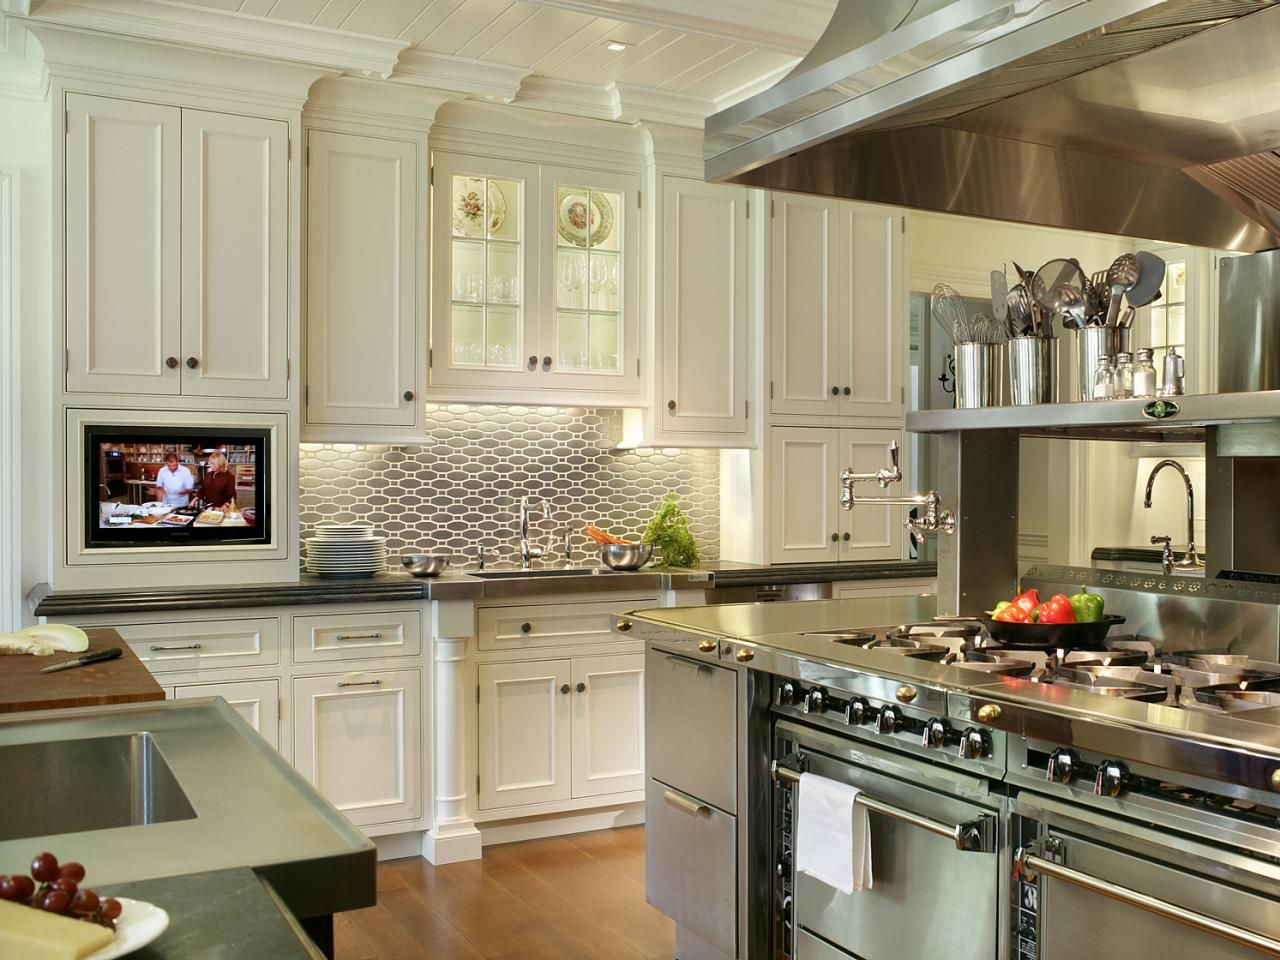 Suprising White Kitchen Cabinets With Glamorous Stainless Steel Mosaic Backsplash Ideas Feat C Kitchen Cabinet Styles Kitchen Cabinet Inspiration Hgtv Kitchens